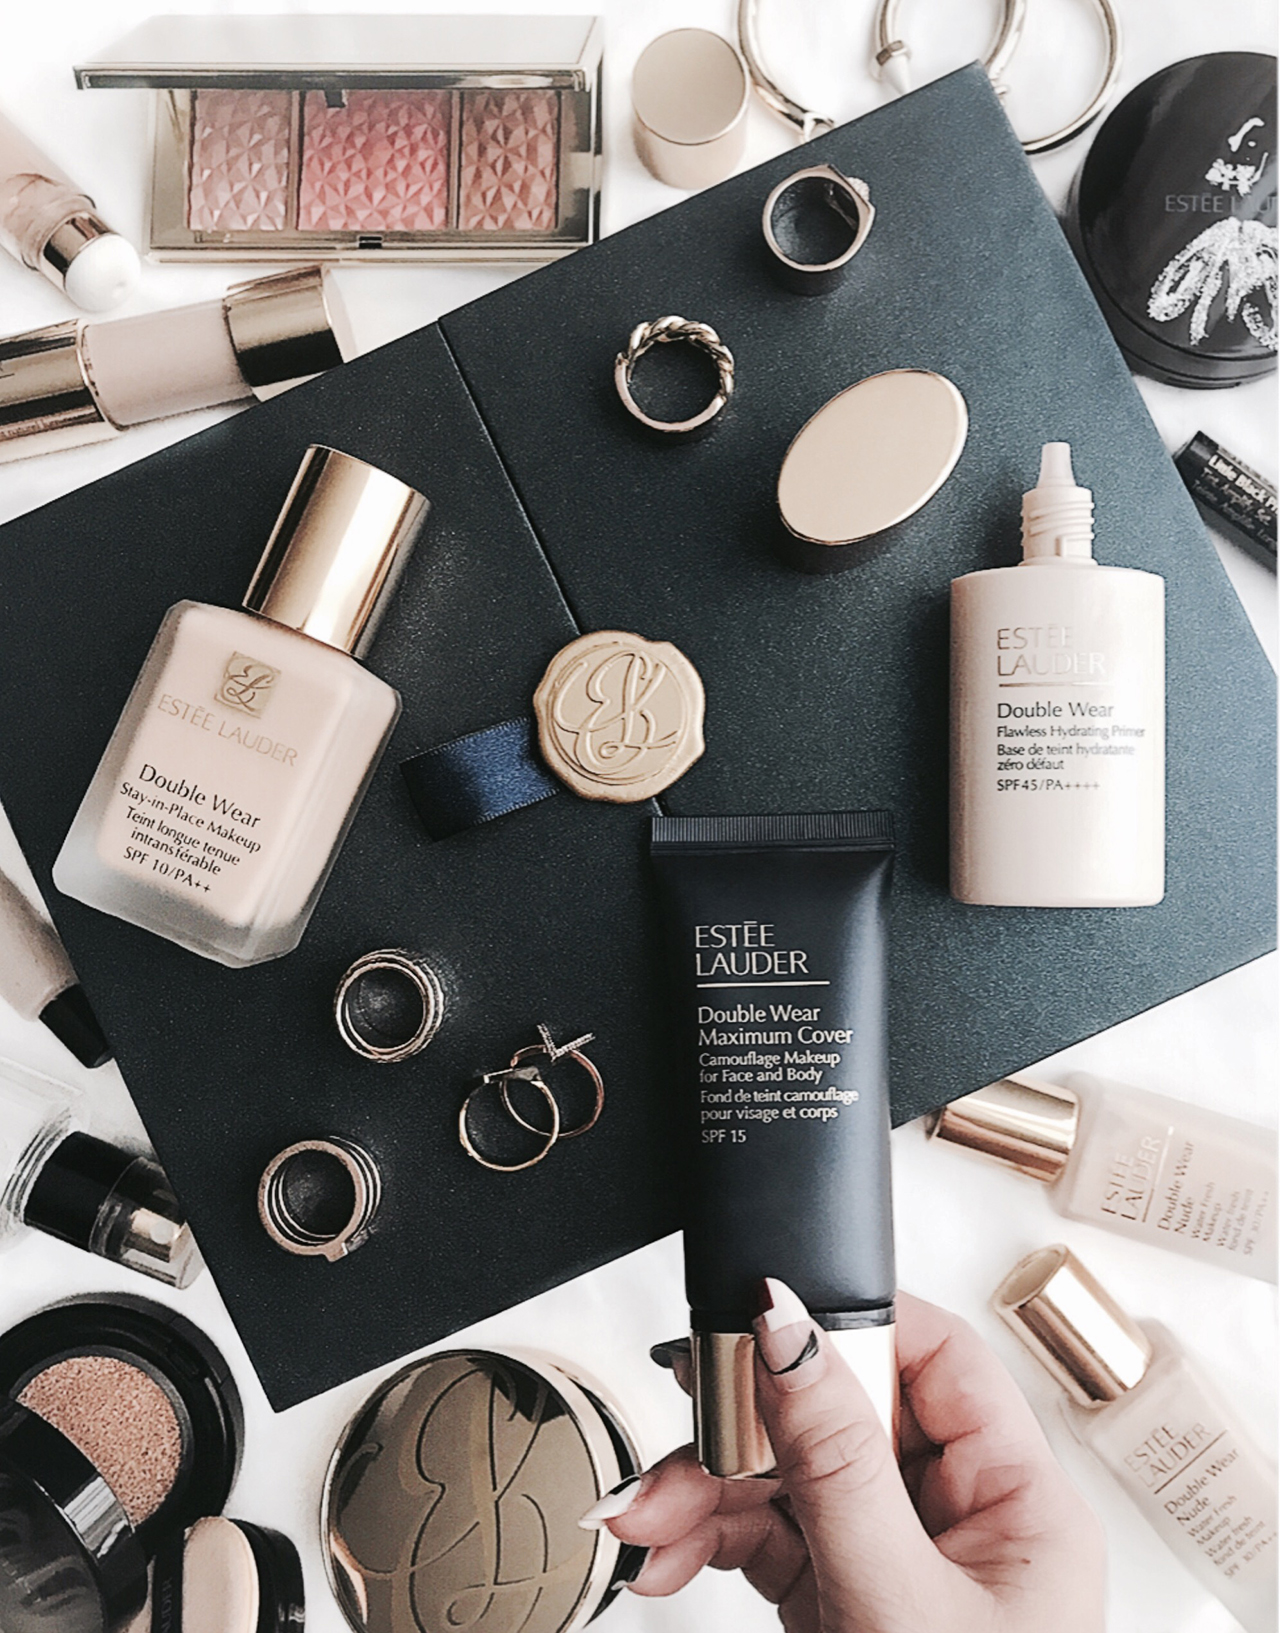 Estee Lauder Double Wear Flawless Hydrating Primer & Maximum Cover Foundation